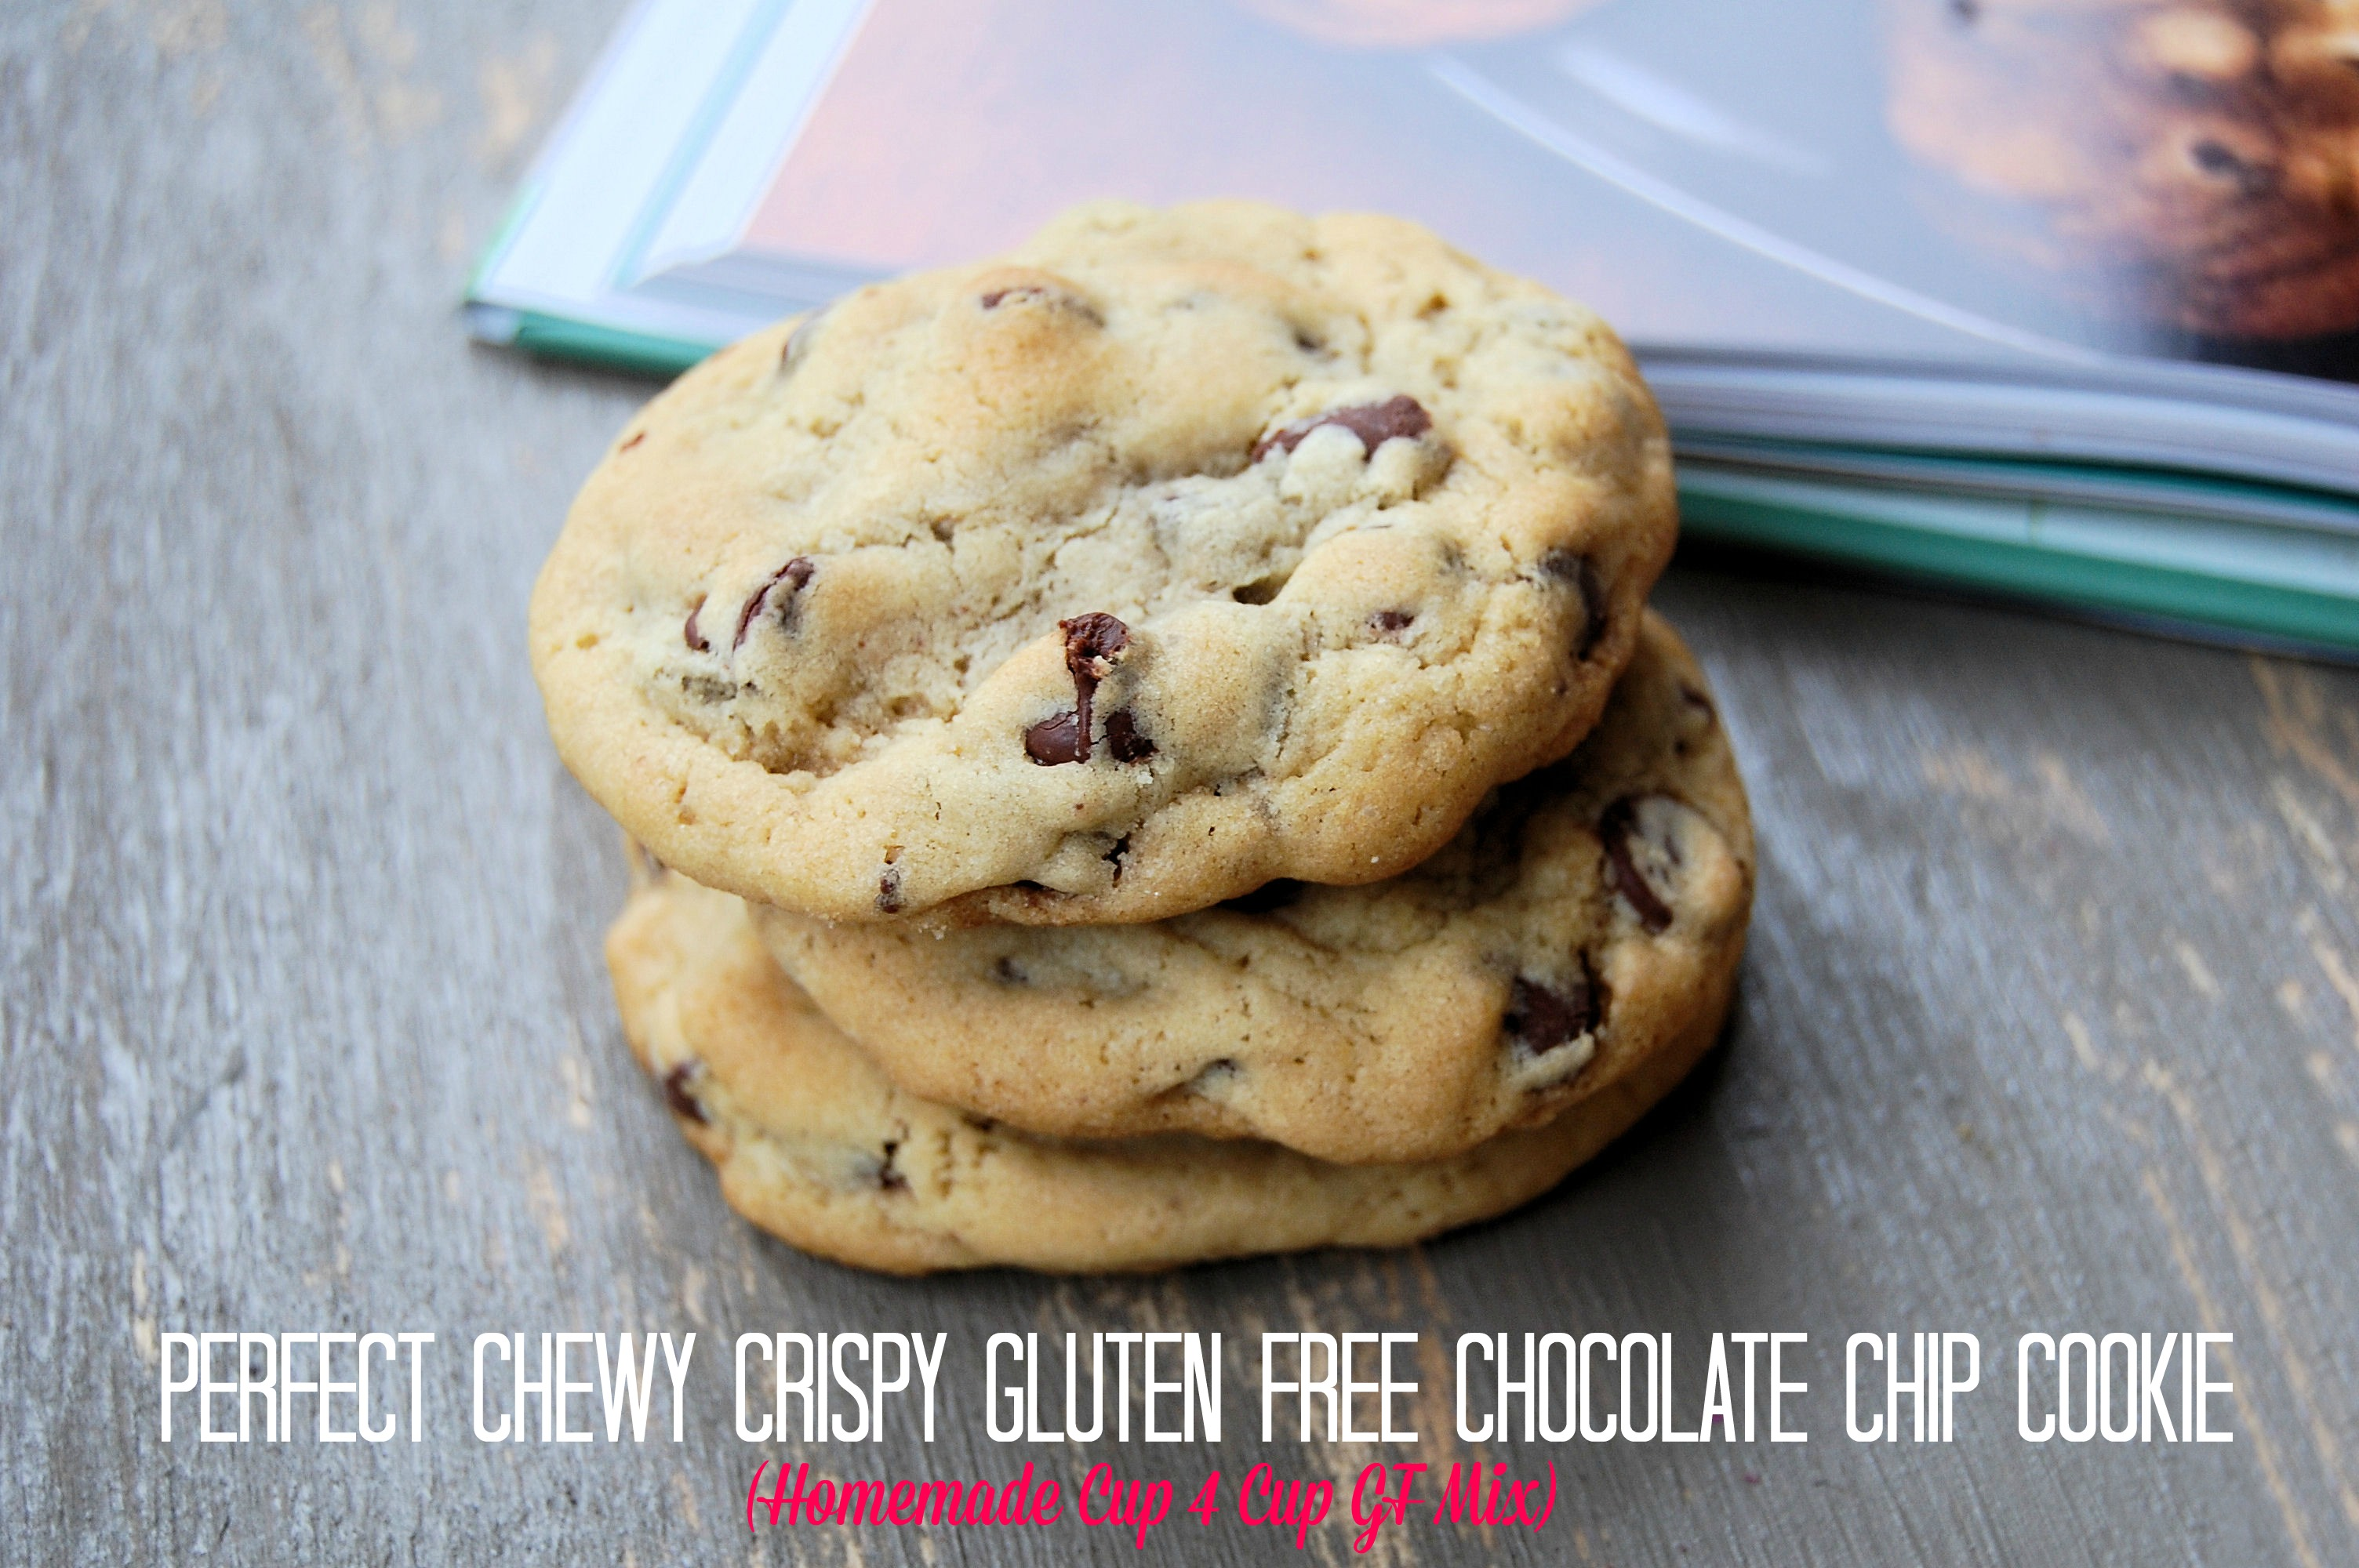 the-best-gluten-free-chocolate-chip-cookie-and-the-runner-ups